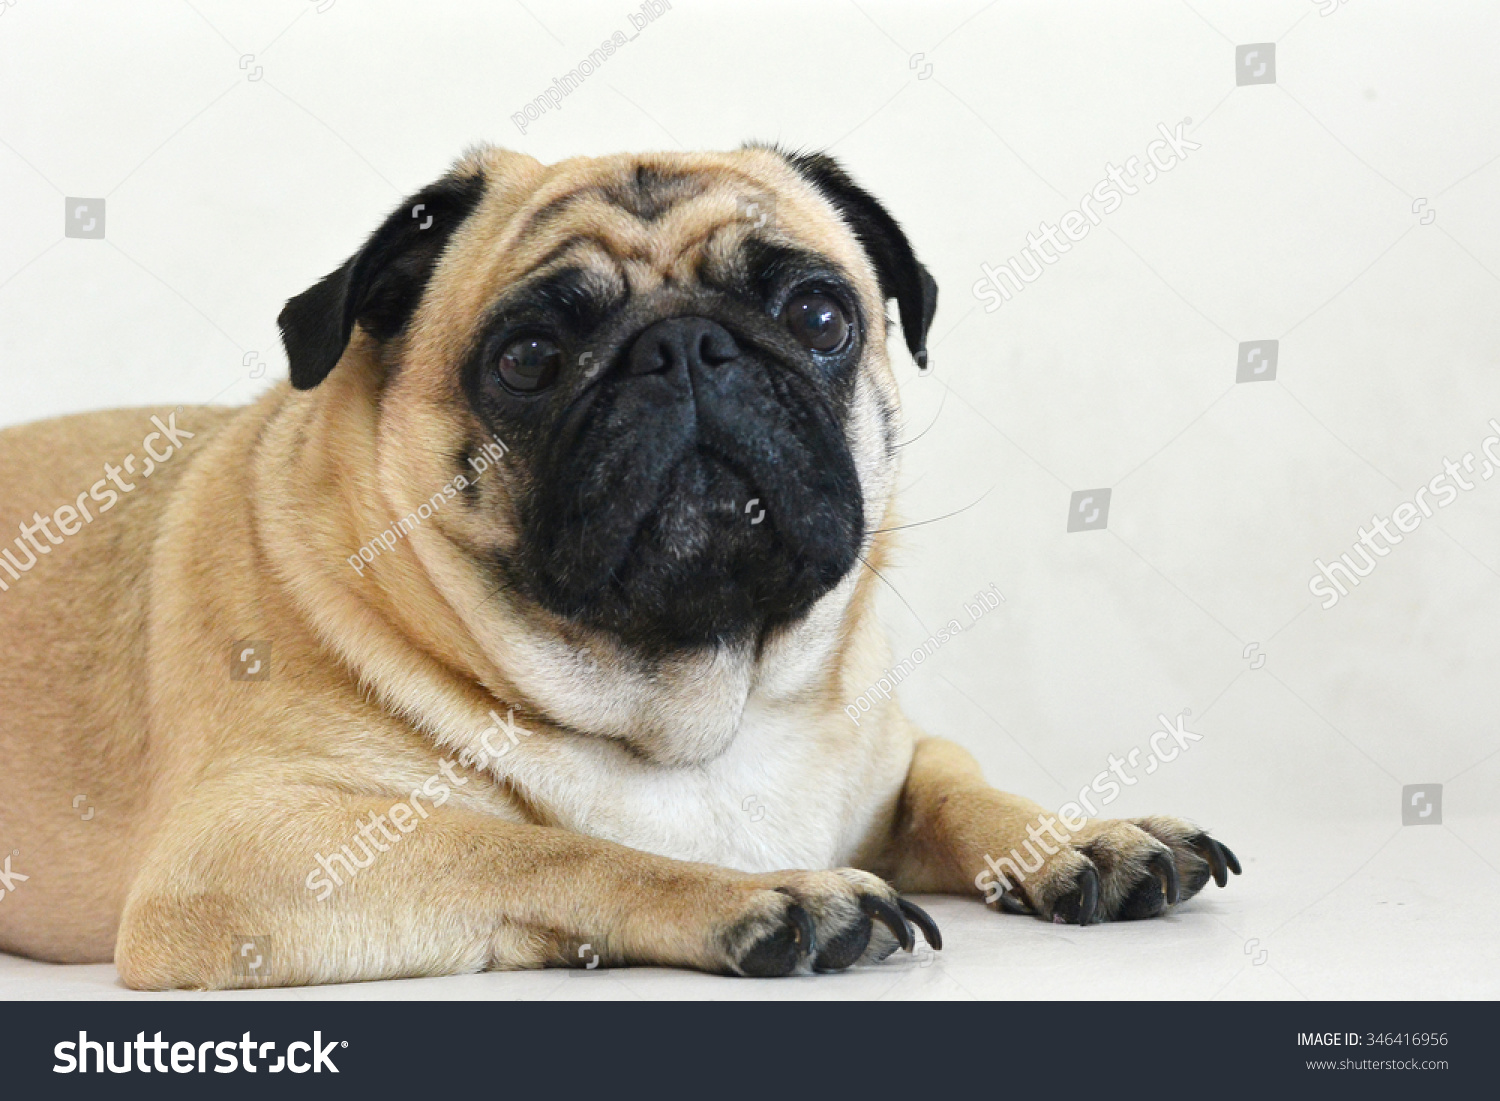 pug dog stock photo 346416956 shutterstock